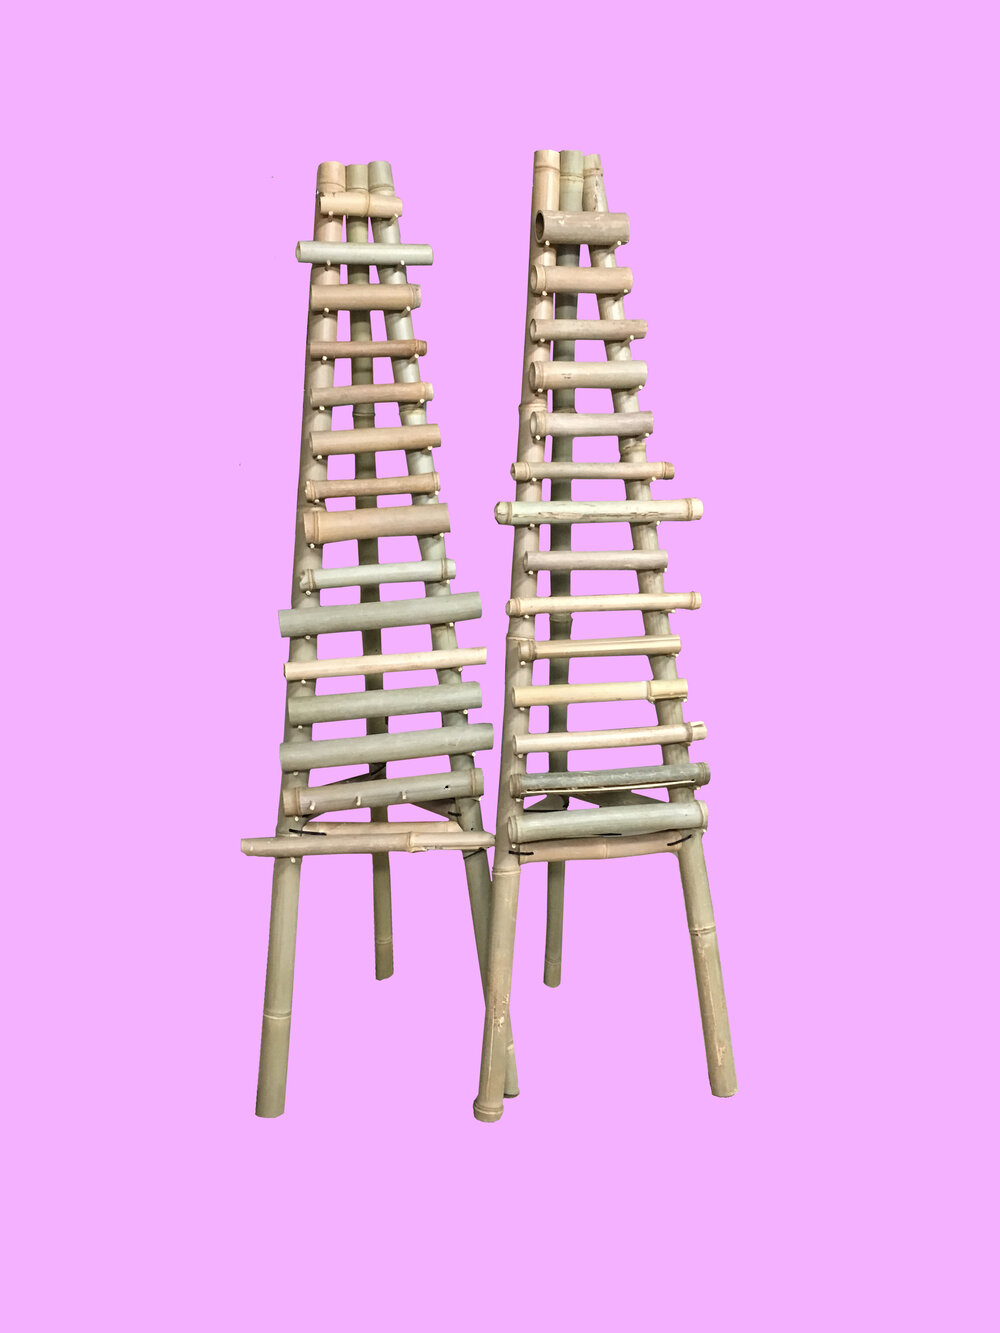 Cannula Racks on Pink from the Ontology of Intimacy